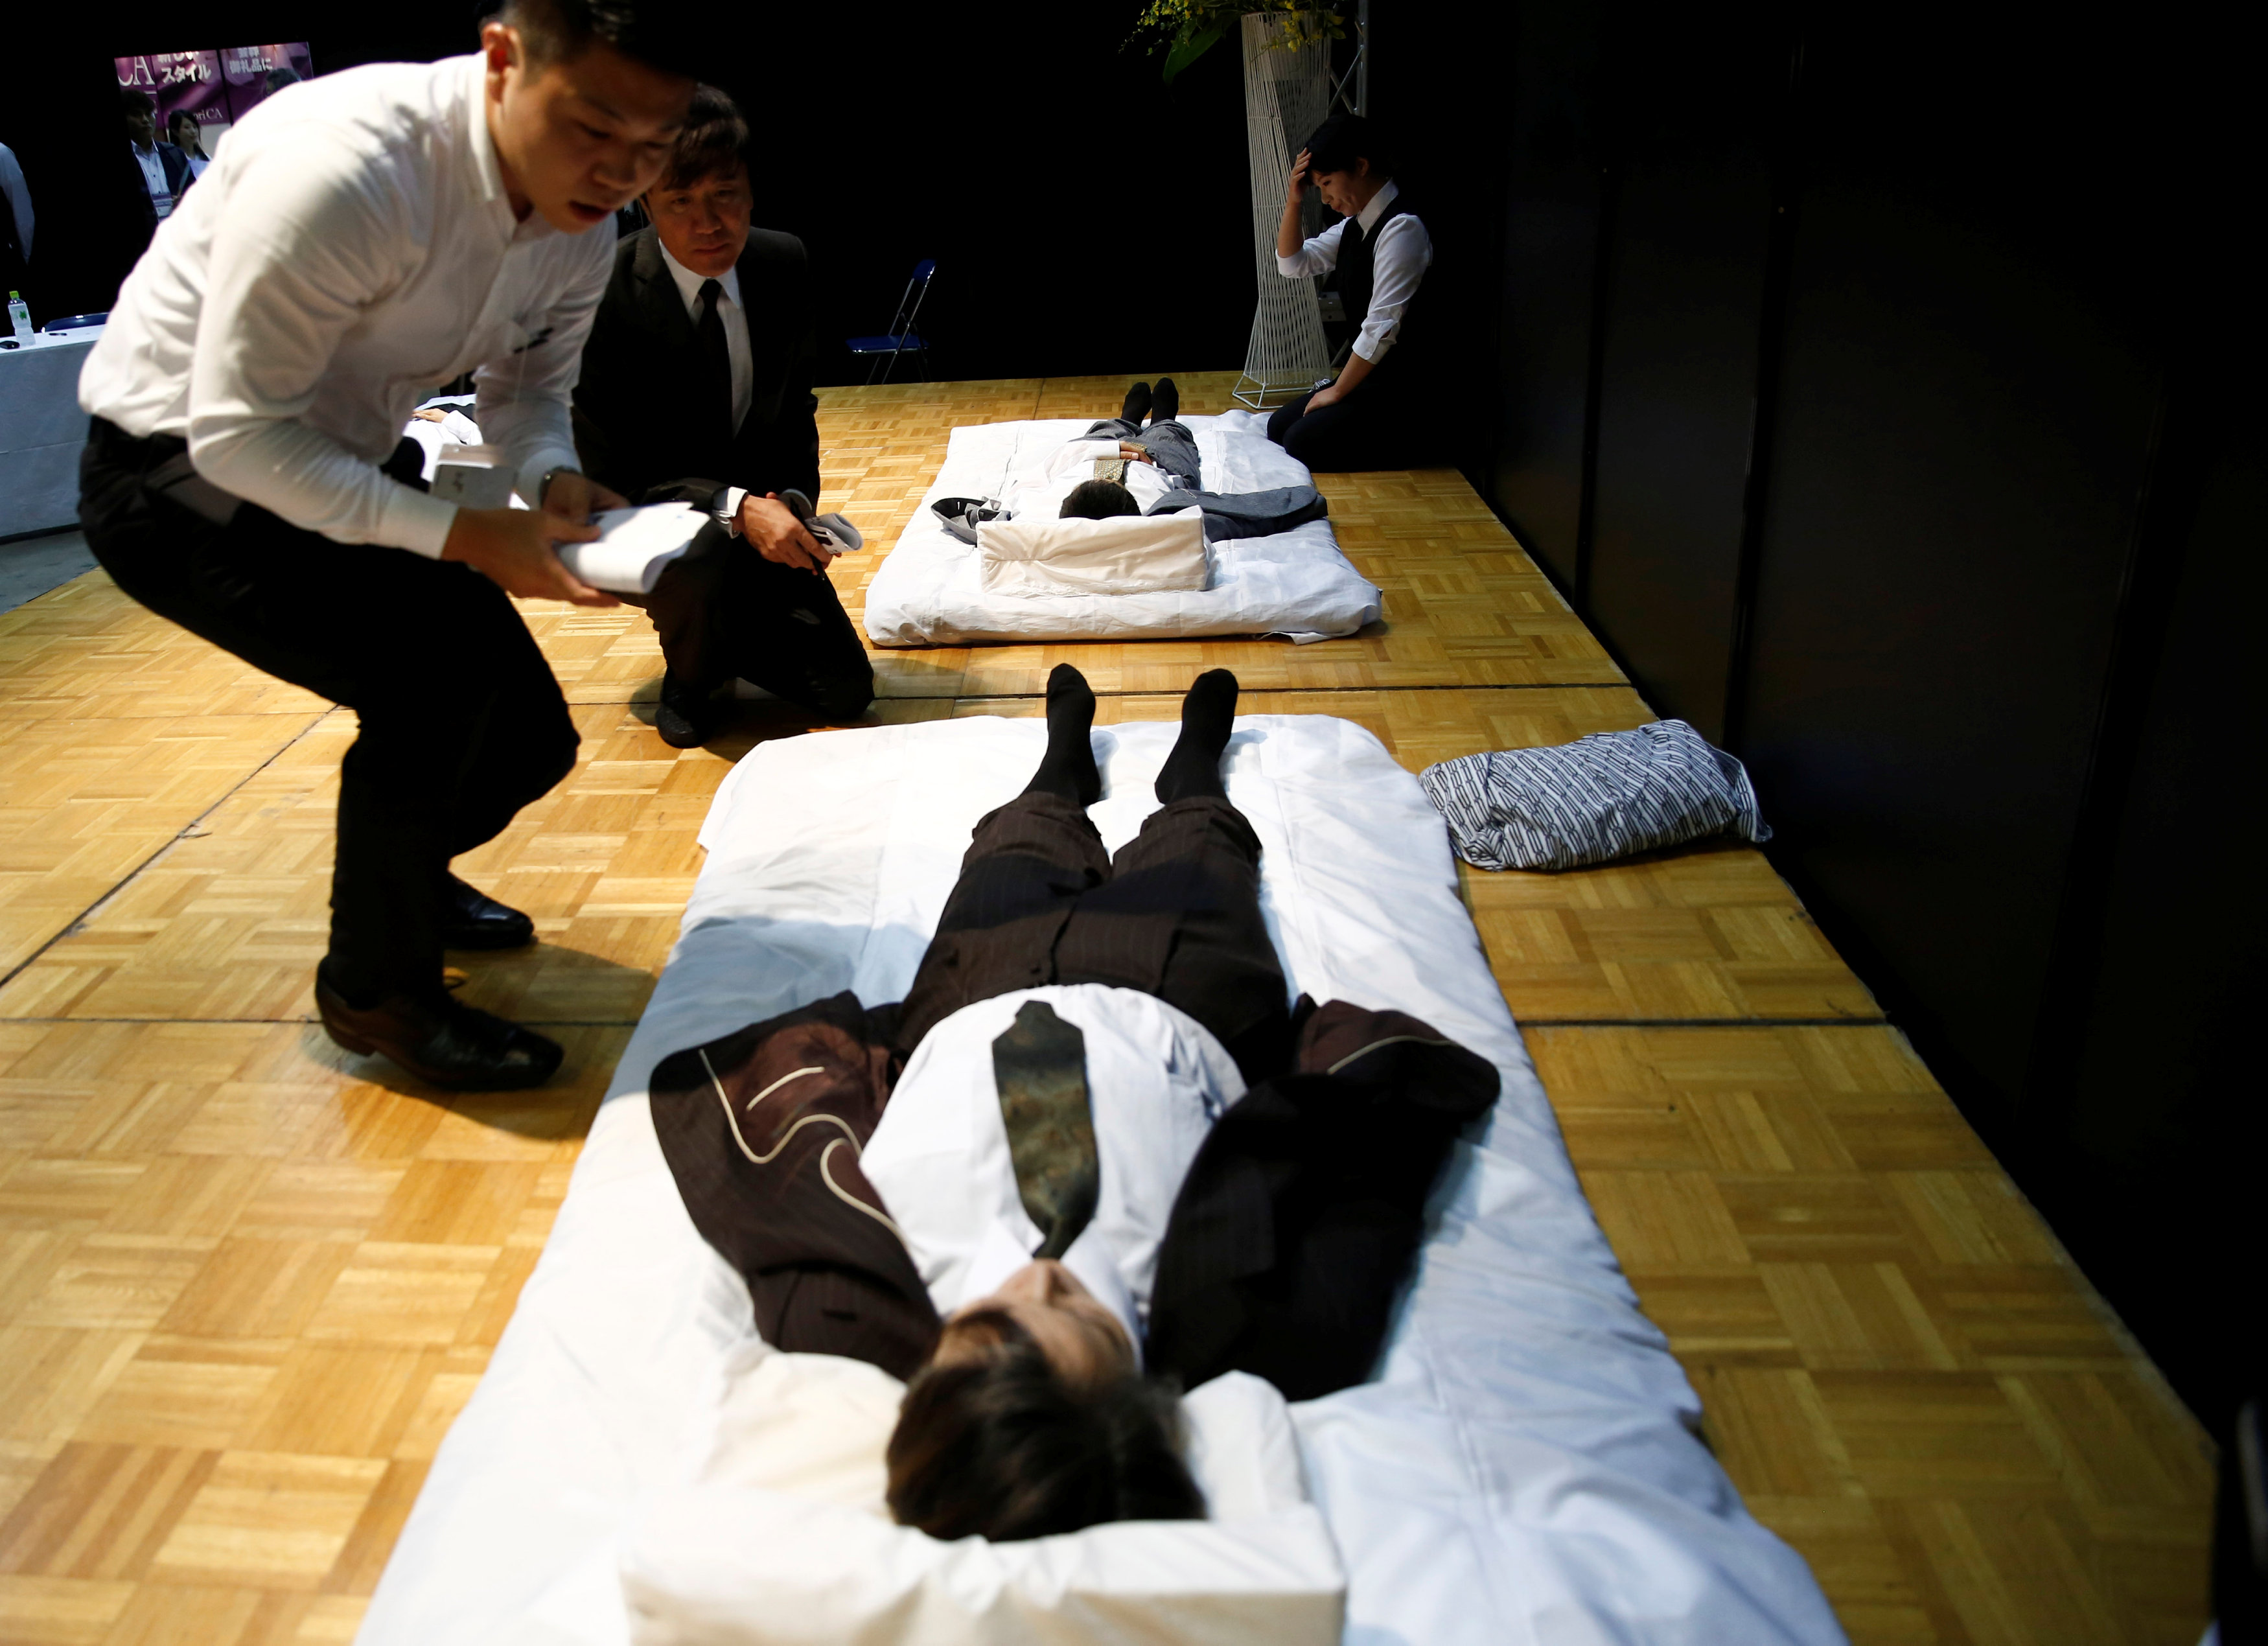 Judges check a model after a funeral undertaker dressed up the model, during an encoffinment competition at Life Ending Industry EXPO 2017 in Tokyo, Japan August 24, 2017. REUTERS/Kim Kyung-Hoon